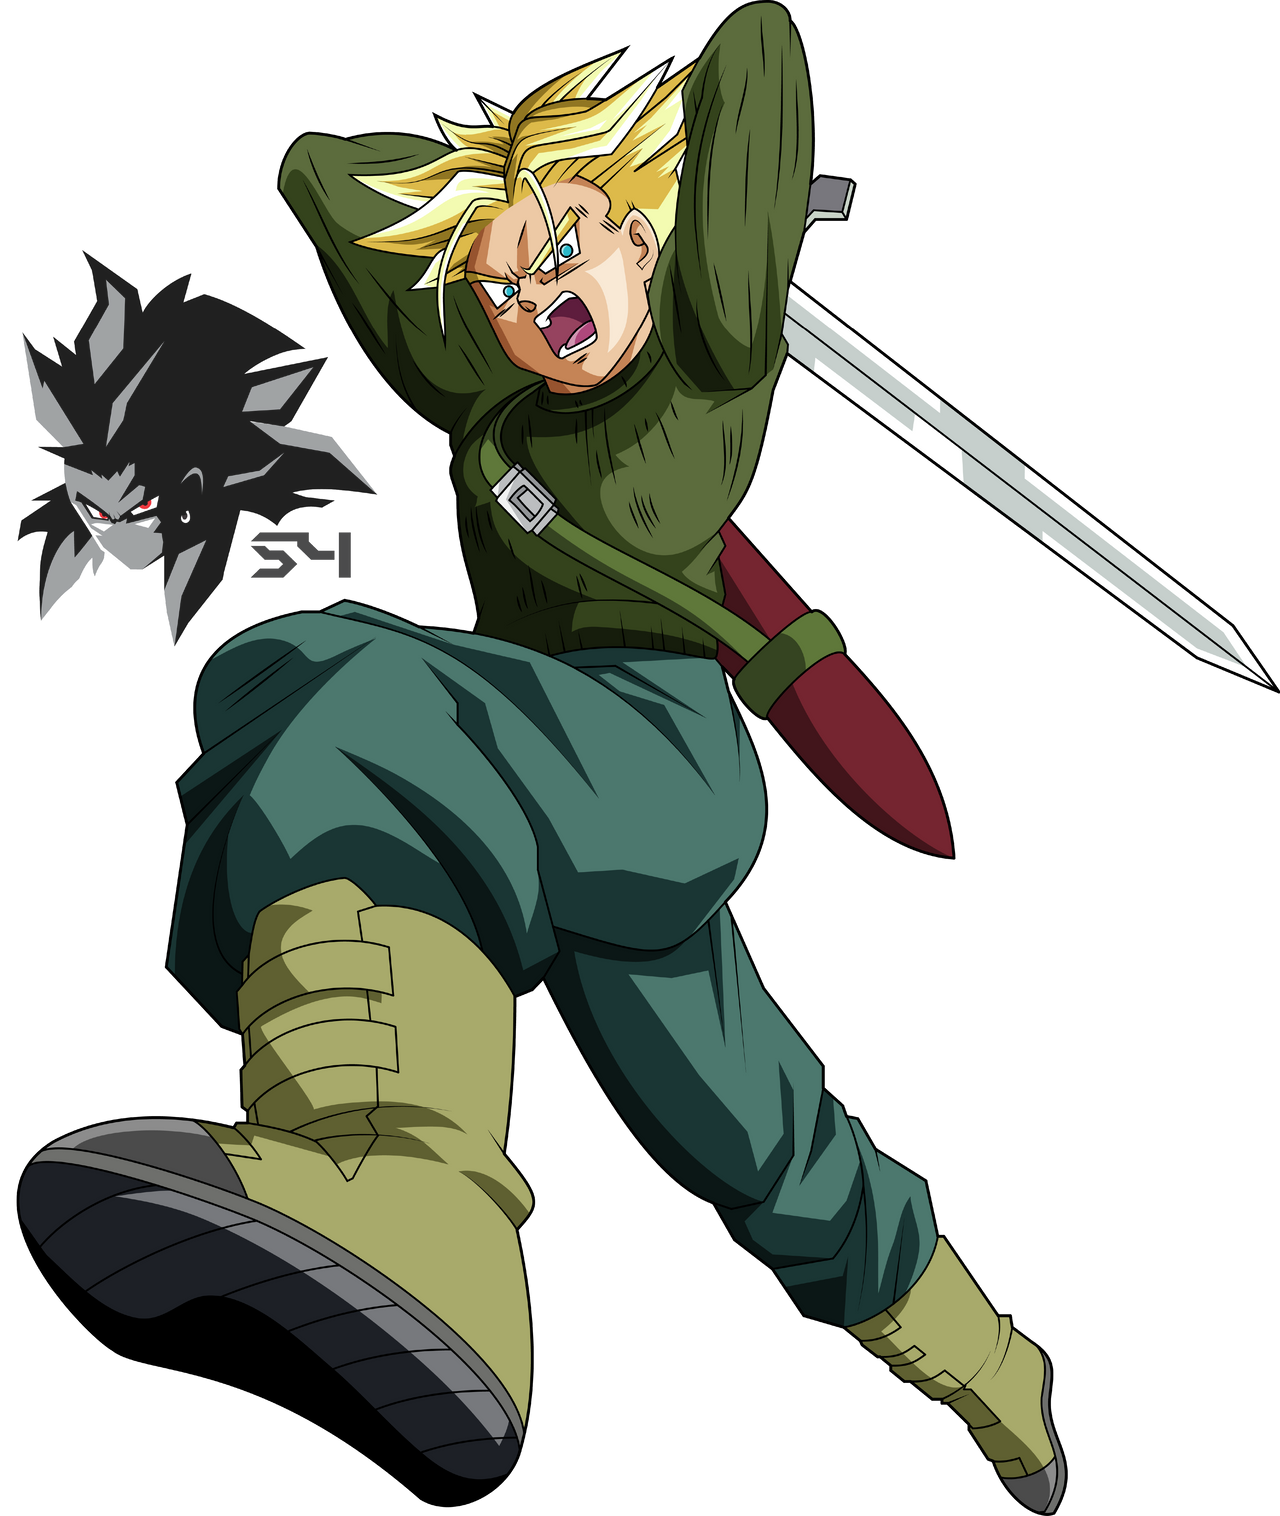 Super Saiyan Future Trunks Dragon Ball Super By MAD-54 On